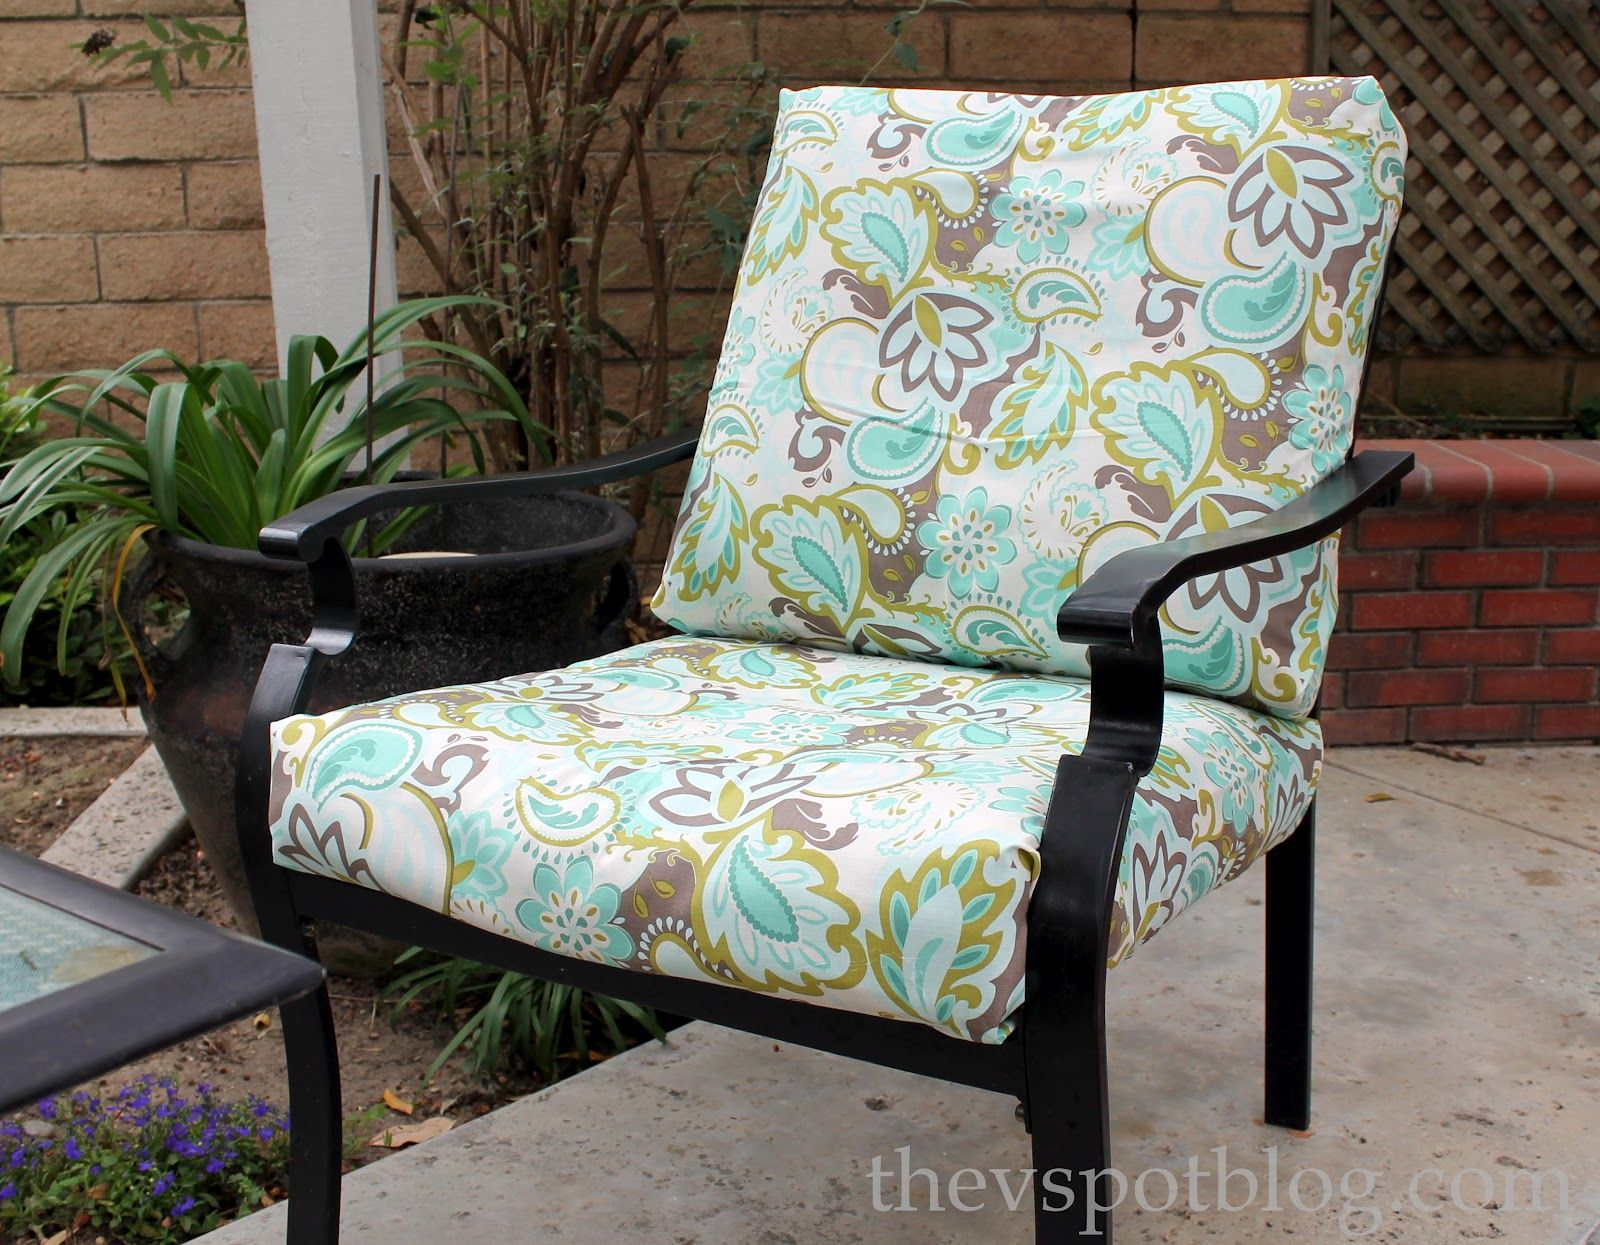 Superior No Sew Project: How To Recover Your Outdoor Cushions Using Fabric And A  Glue Gun.   Outdoor Cushions, Glue Guns And Guns